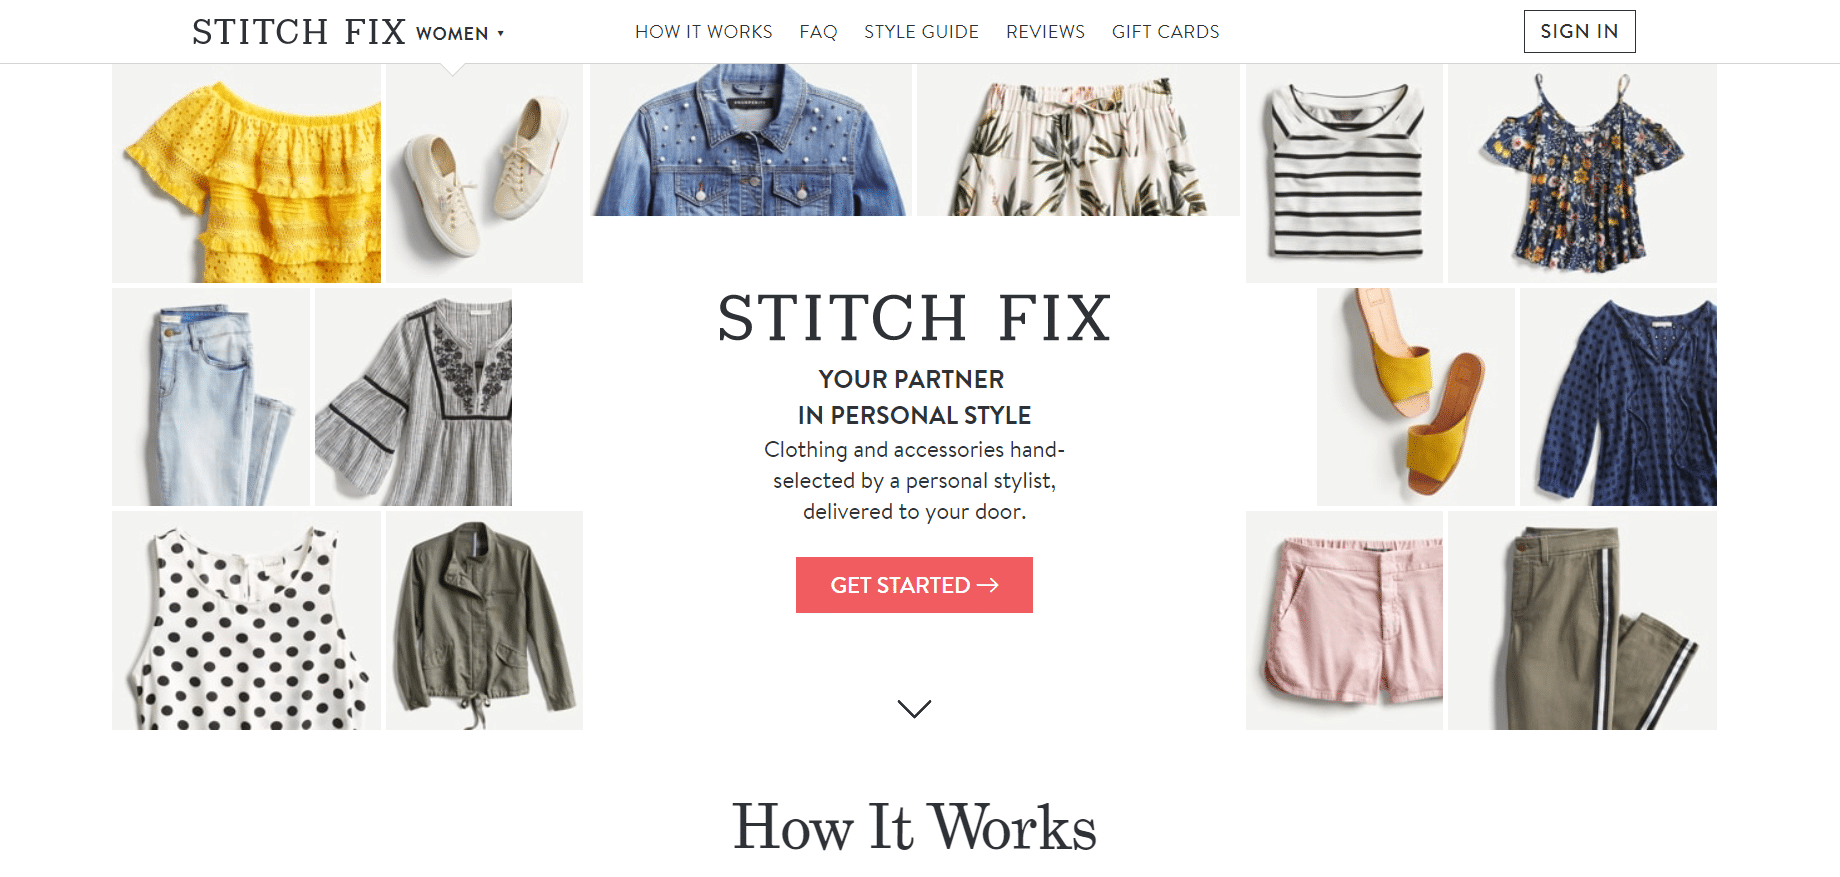 Stitch Fix Review - Website Experience